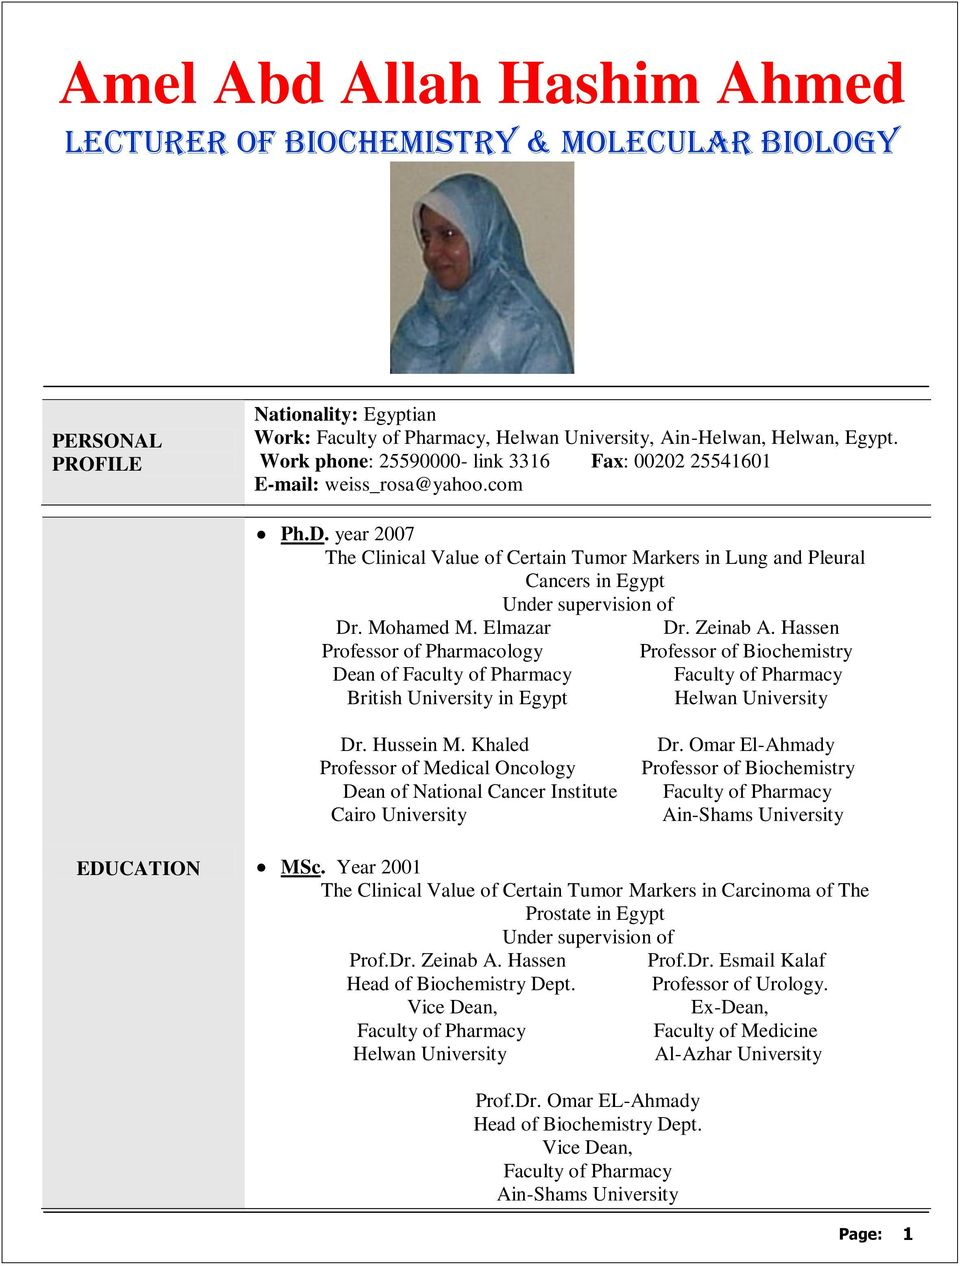 year 2007 The Clinical Value of Certain Tumor Markers in Lung and Pleural Cancers in Egypt Under supervision of Dr. Mohamed M. Elmazar Dr. Zeinab A.